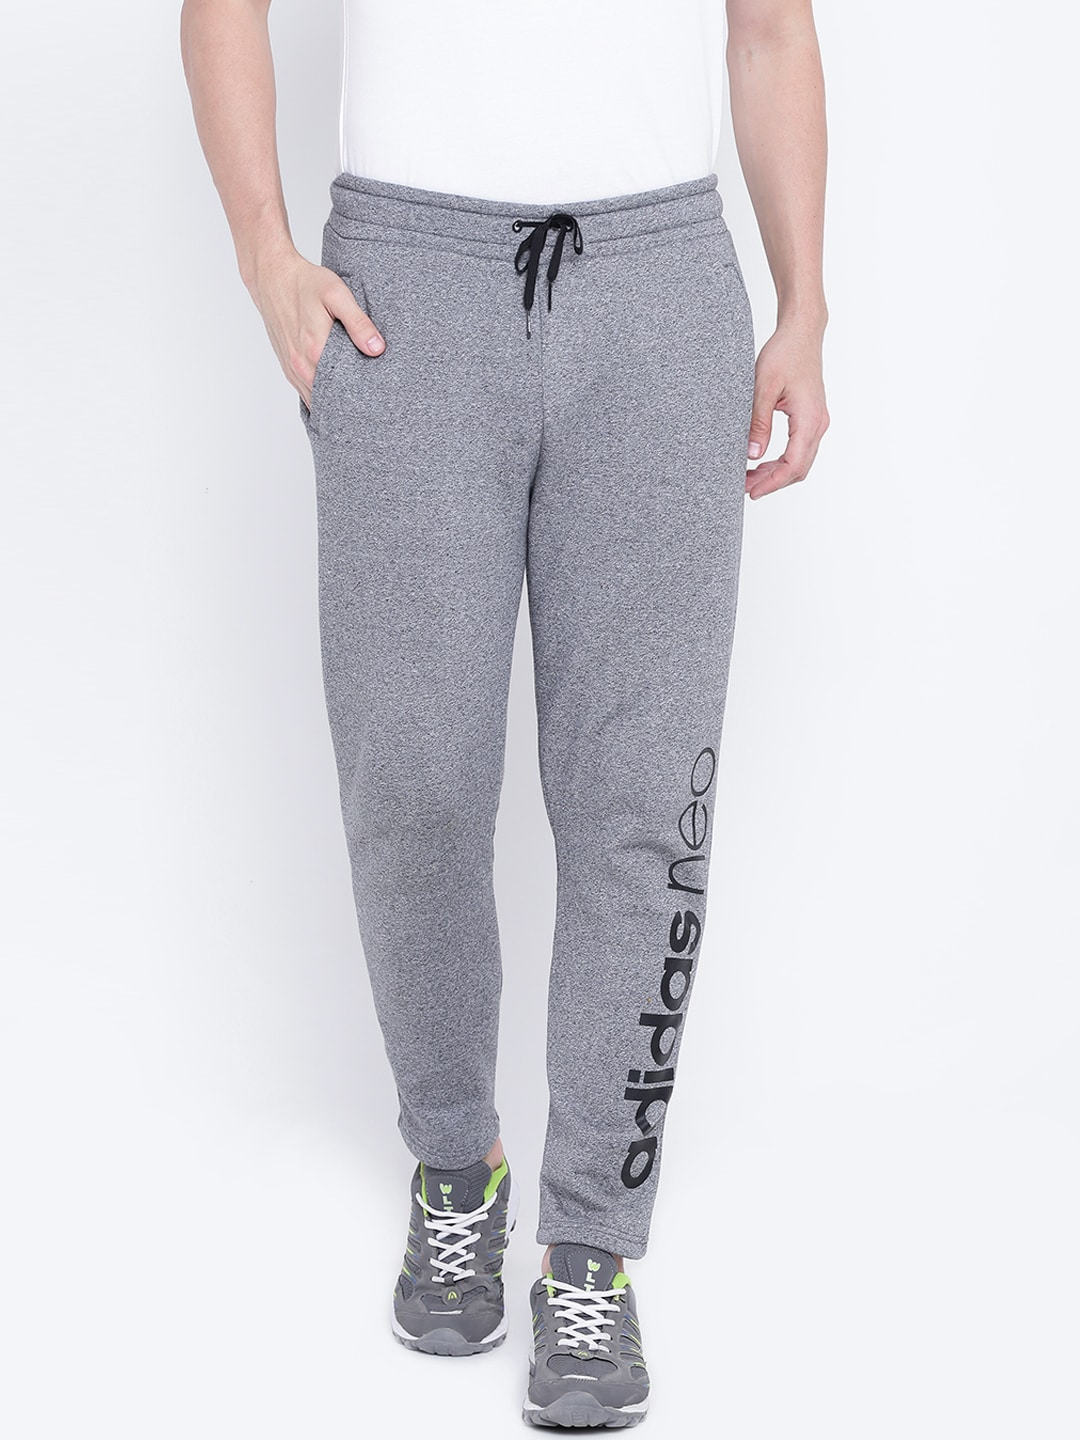 a43550efb2ee4 Adidas White Track Pants Pants - Buy Adidas White Track Pants Pants online  in India